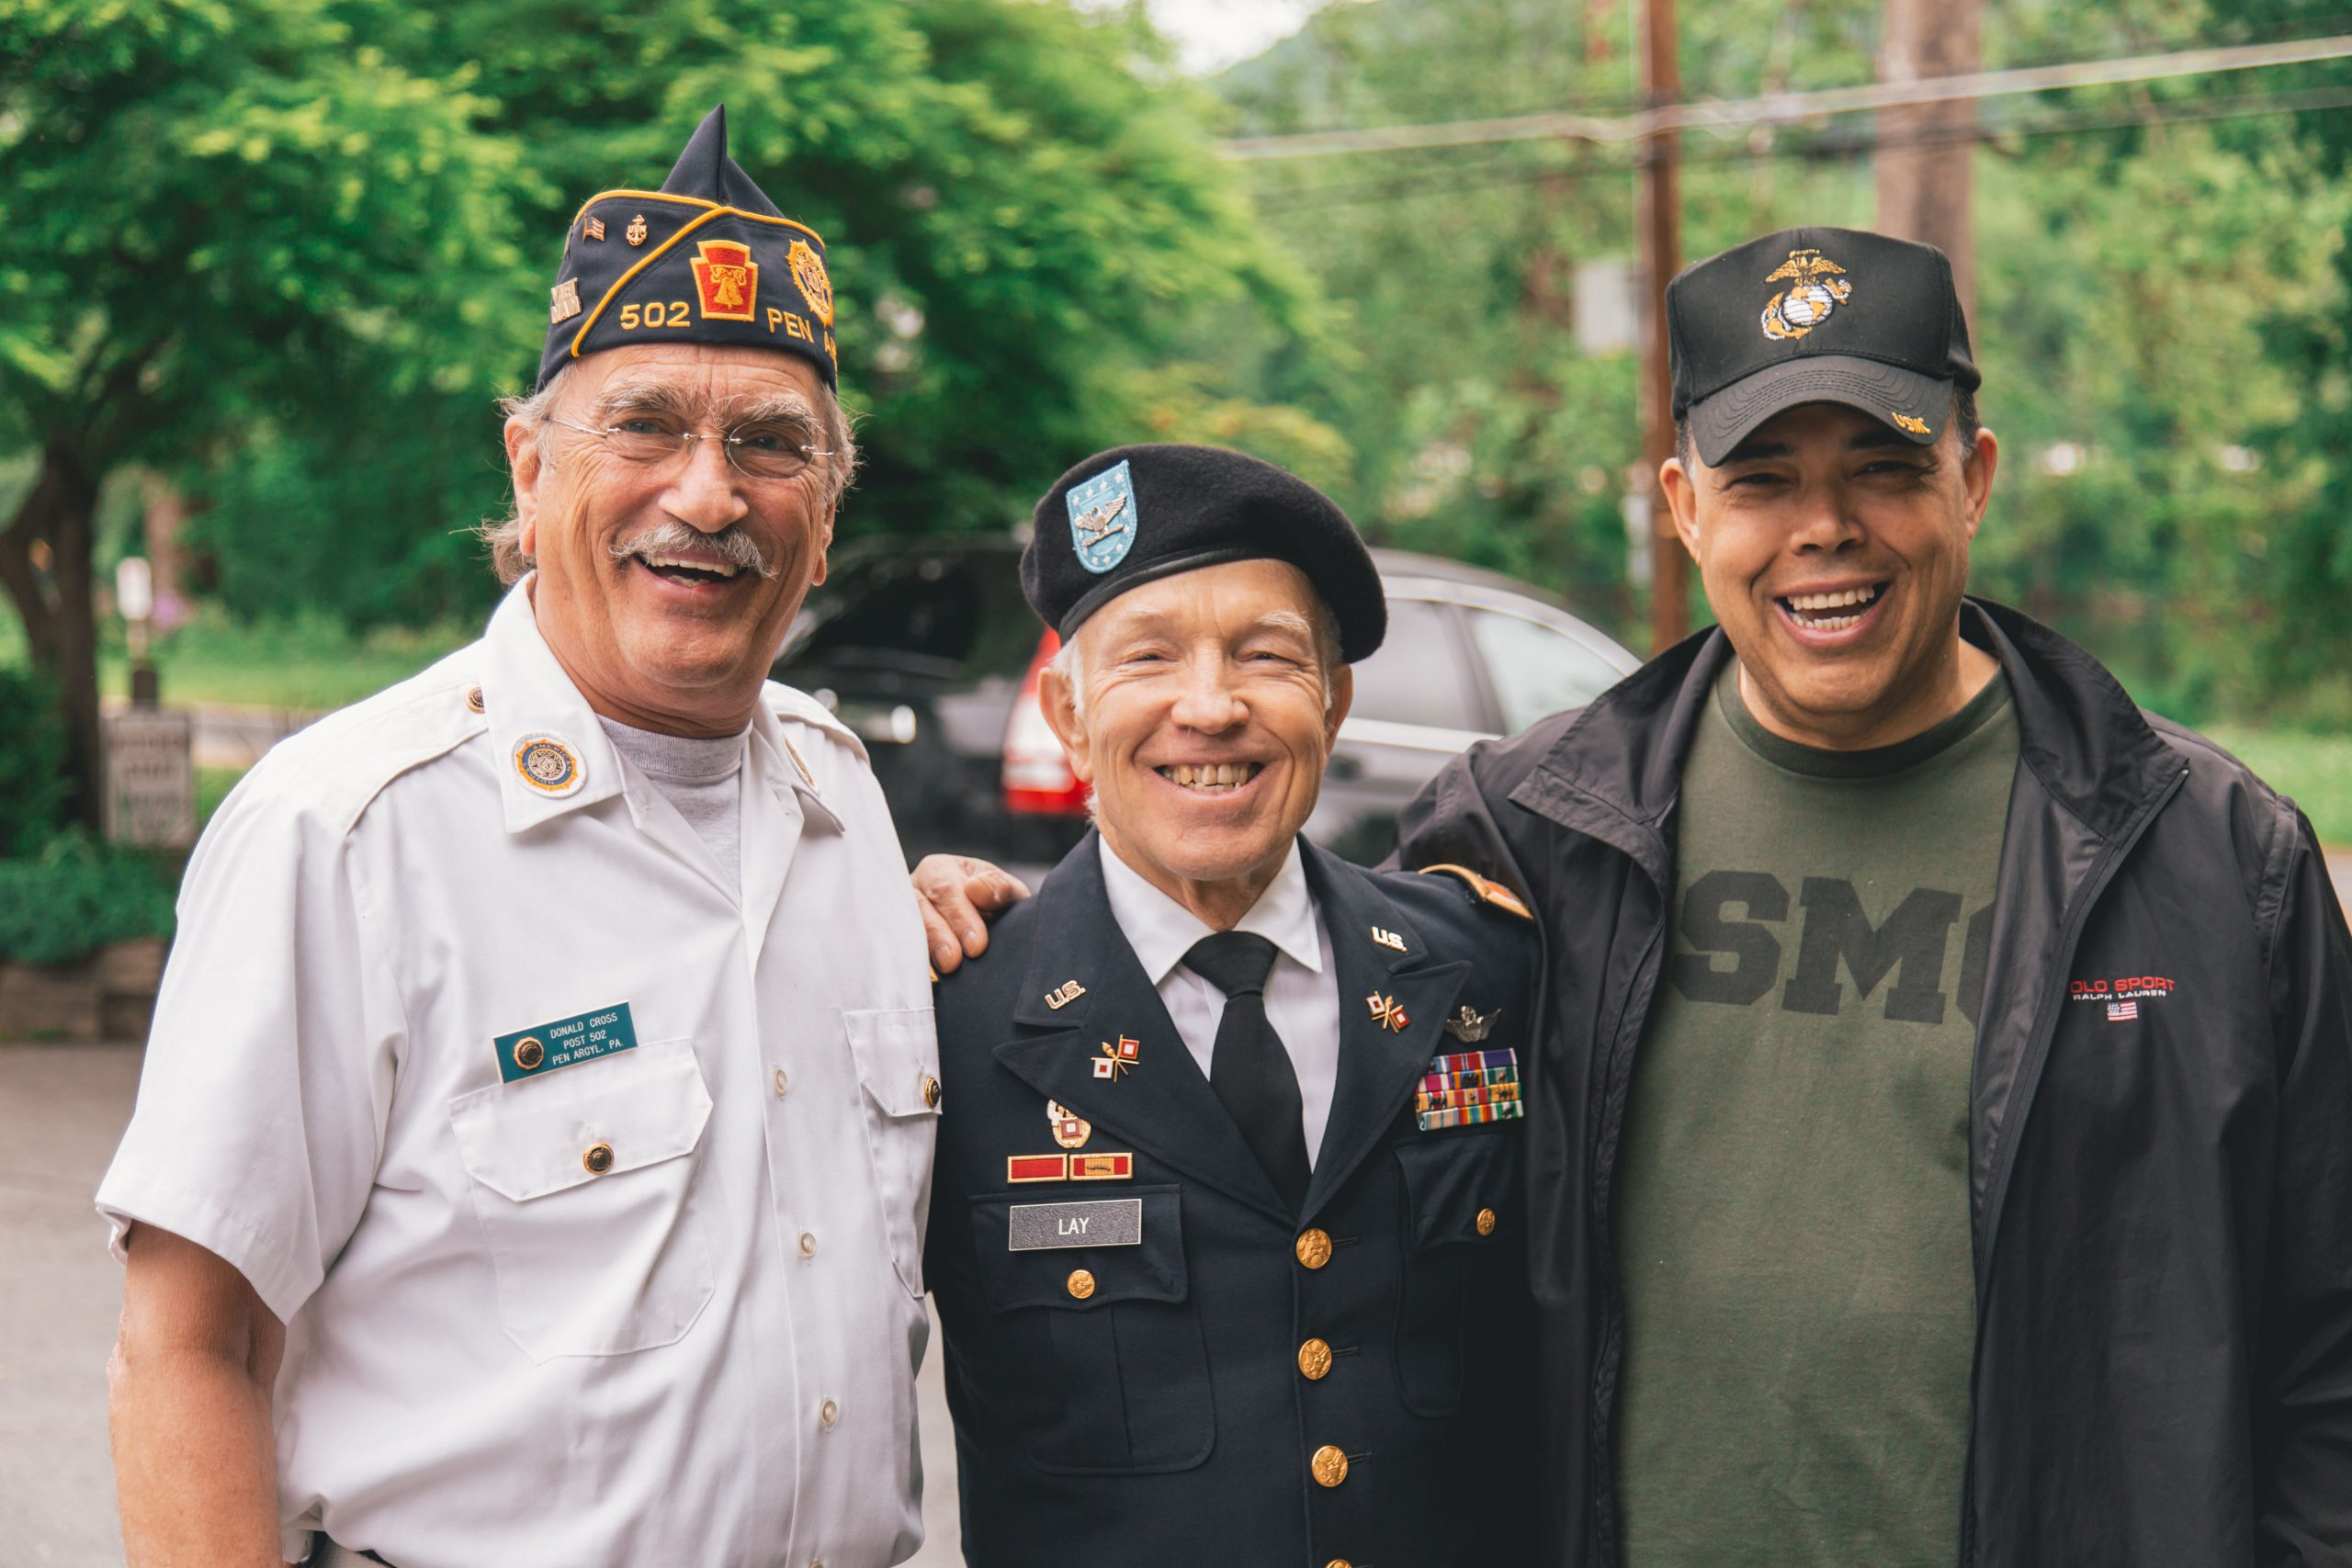 Group of veterans embracing and smiling for the camera in uniform and military attire. You too can meet with a therapist providing counseling for veterans in Wesley Chapel, FL. We also provide mental health disability evaluation for VA benefits. You can get therapy for veterans near Tampa, FL at Sheltering Oaks Counseling in Wesley Chapel, FL